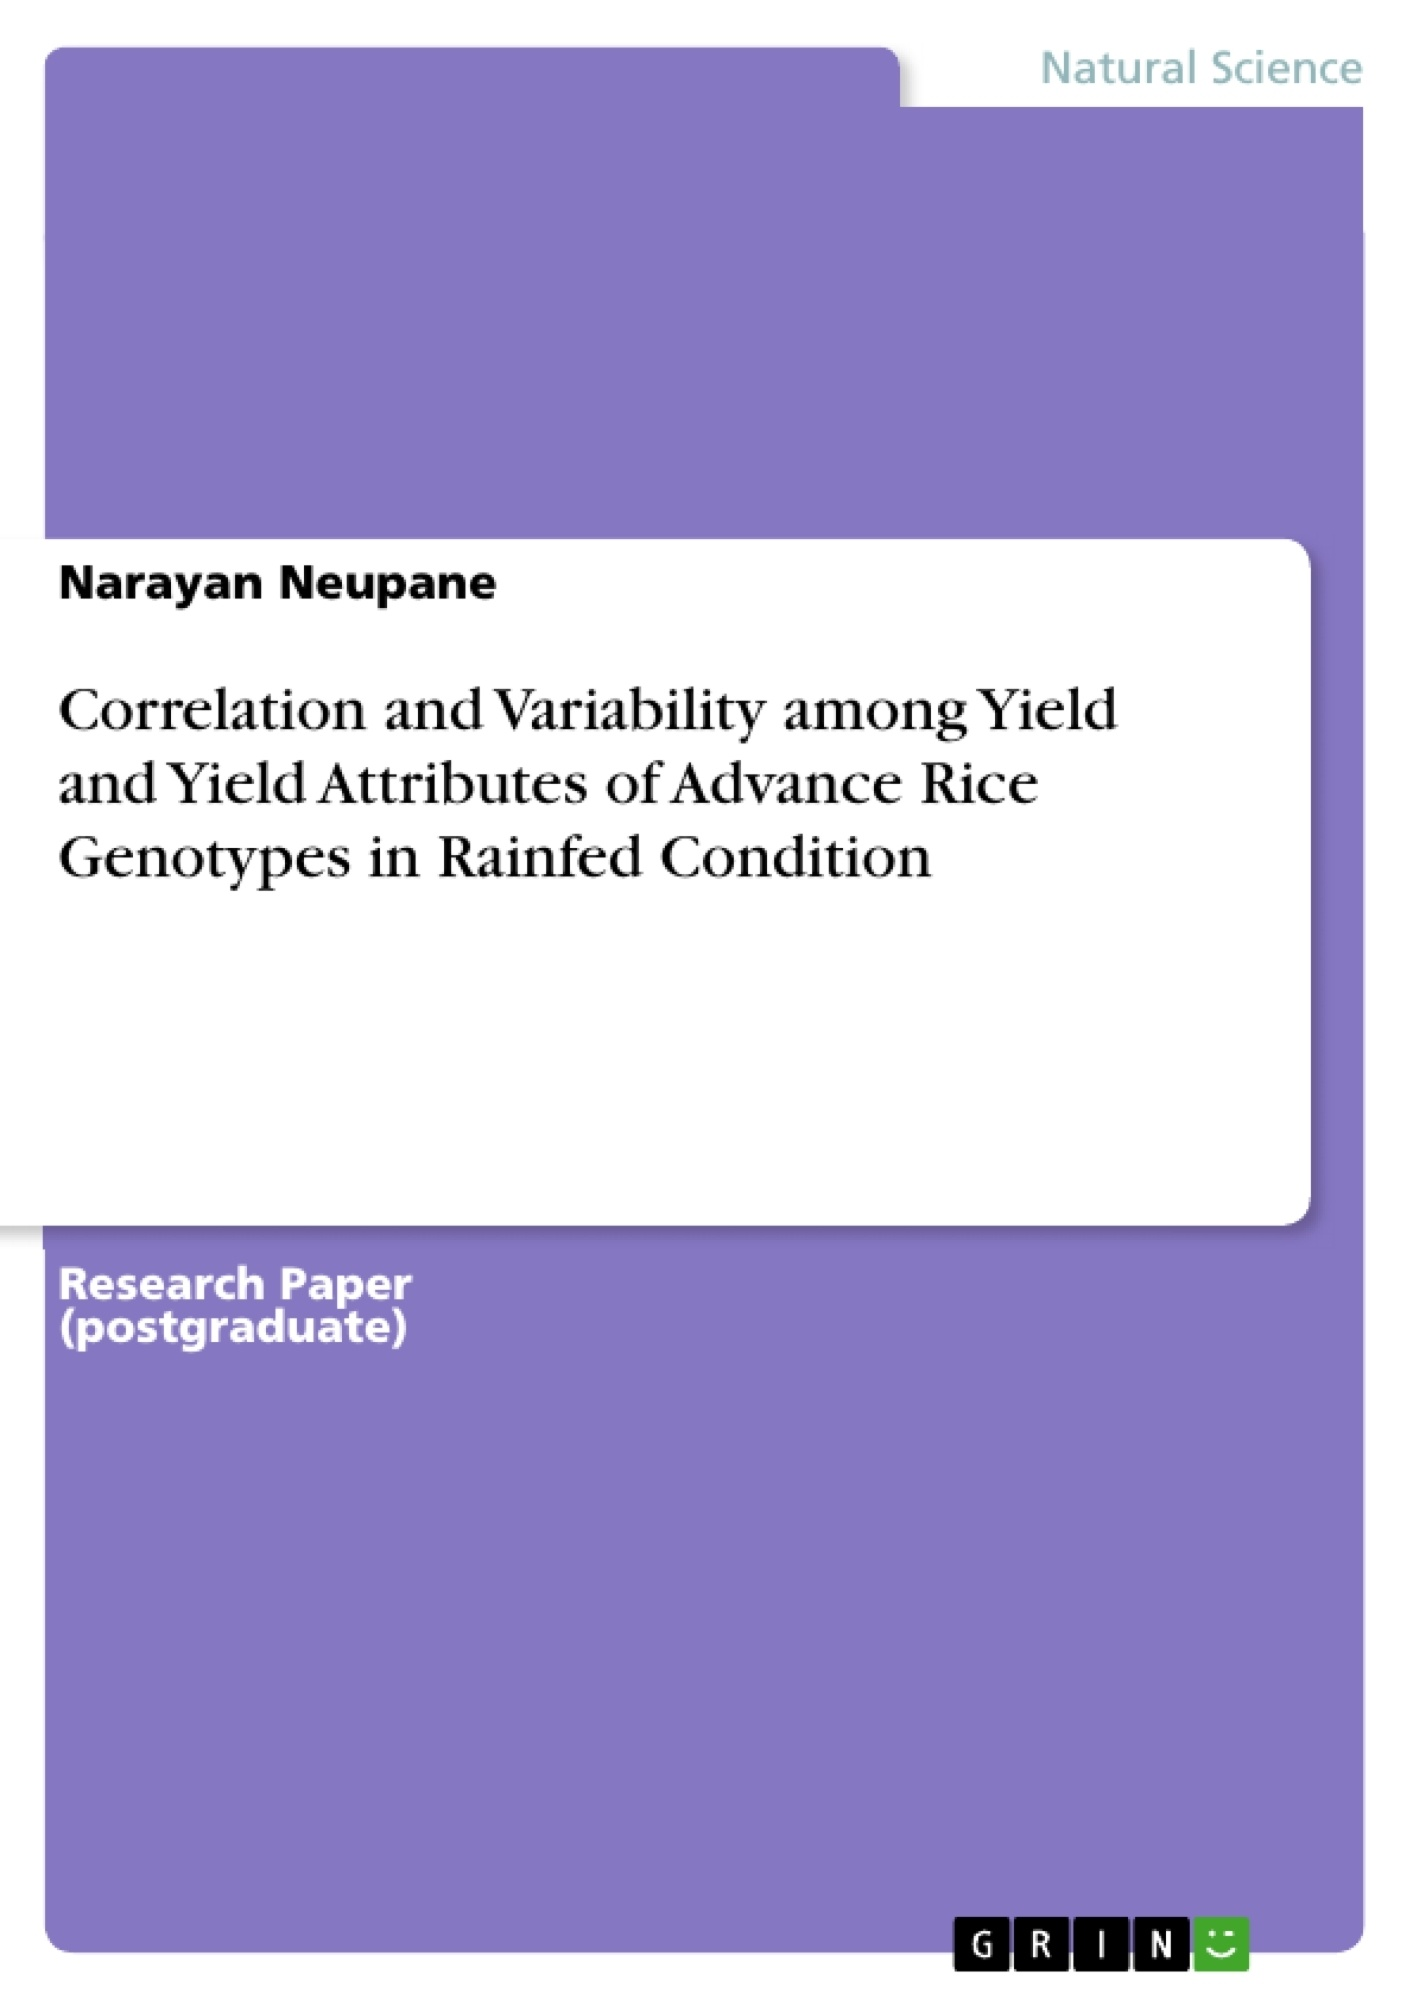 Title: Correlation and Variability among Yield and Yield Attributes of Advance Rice Genotypes in Rainfed Condition